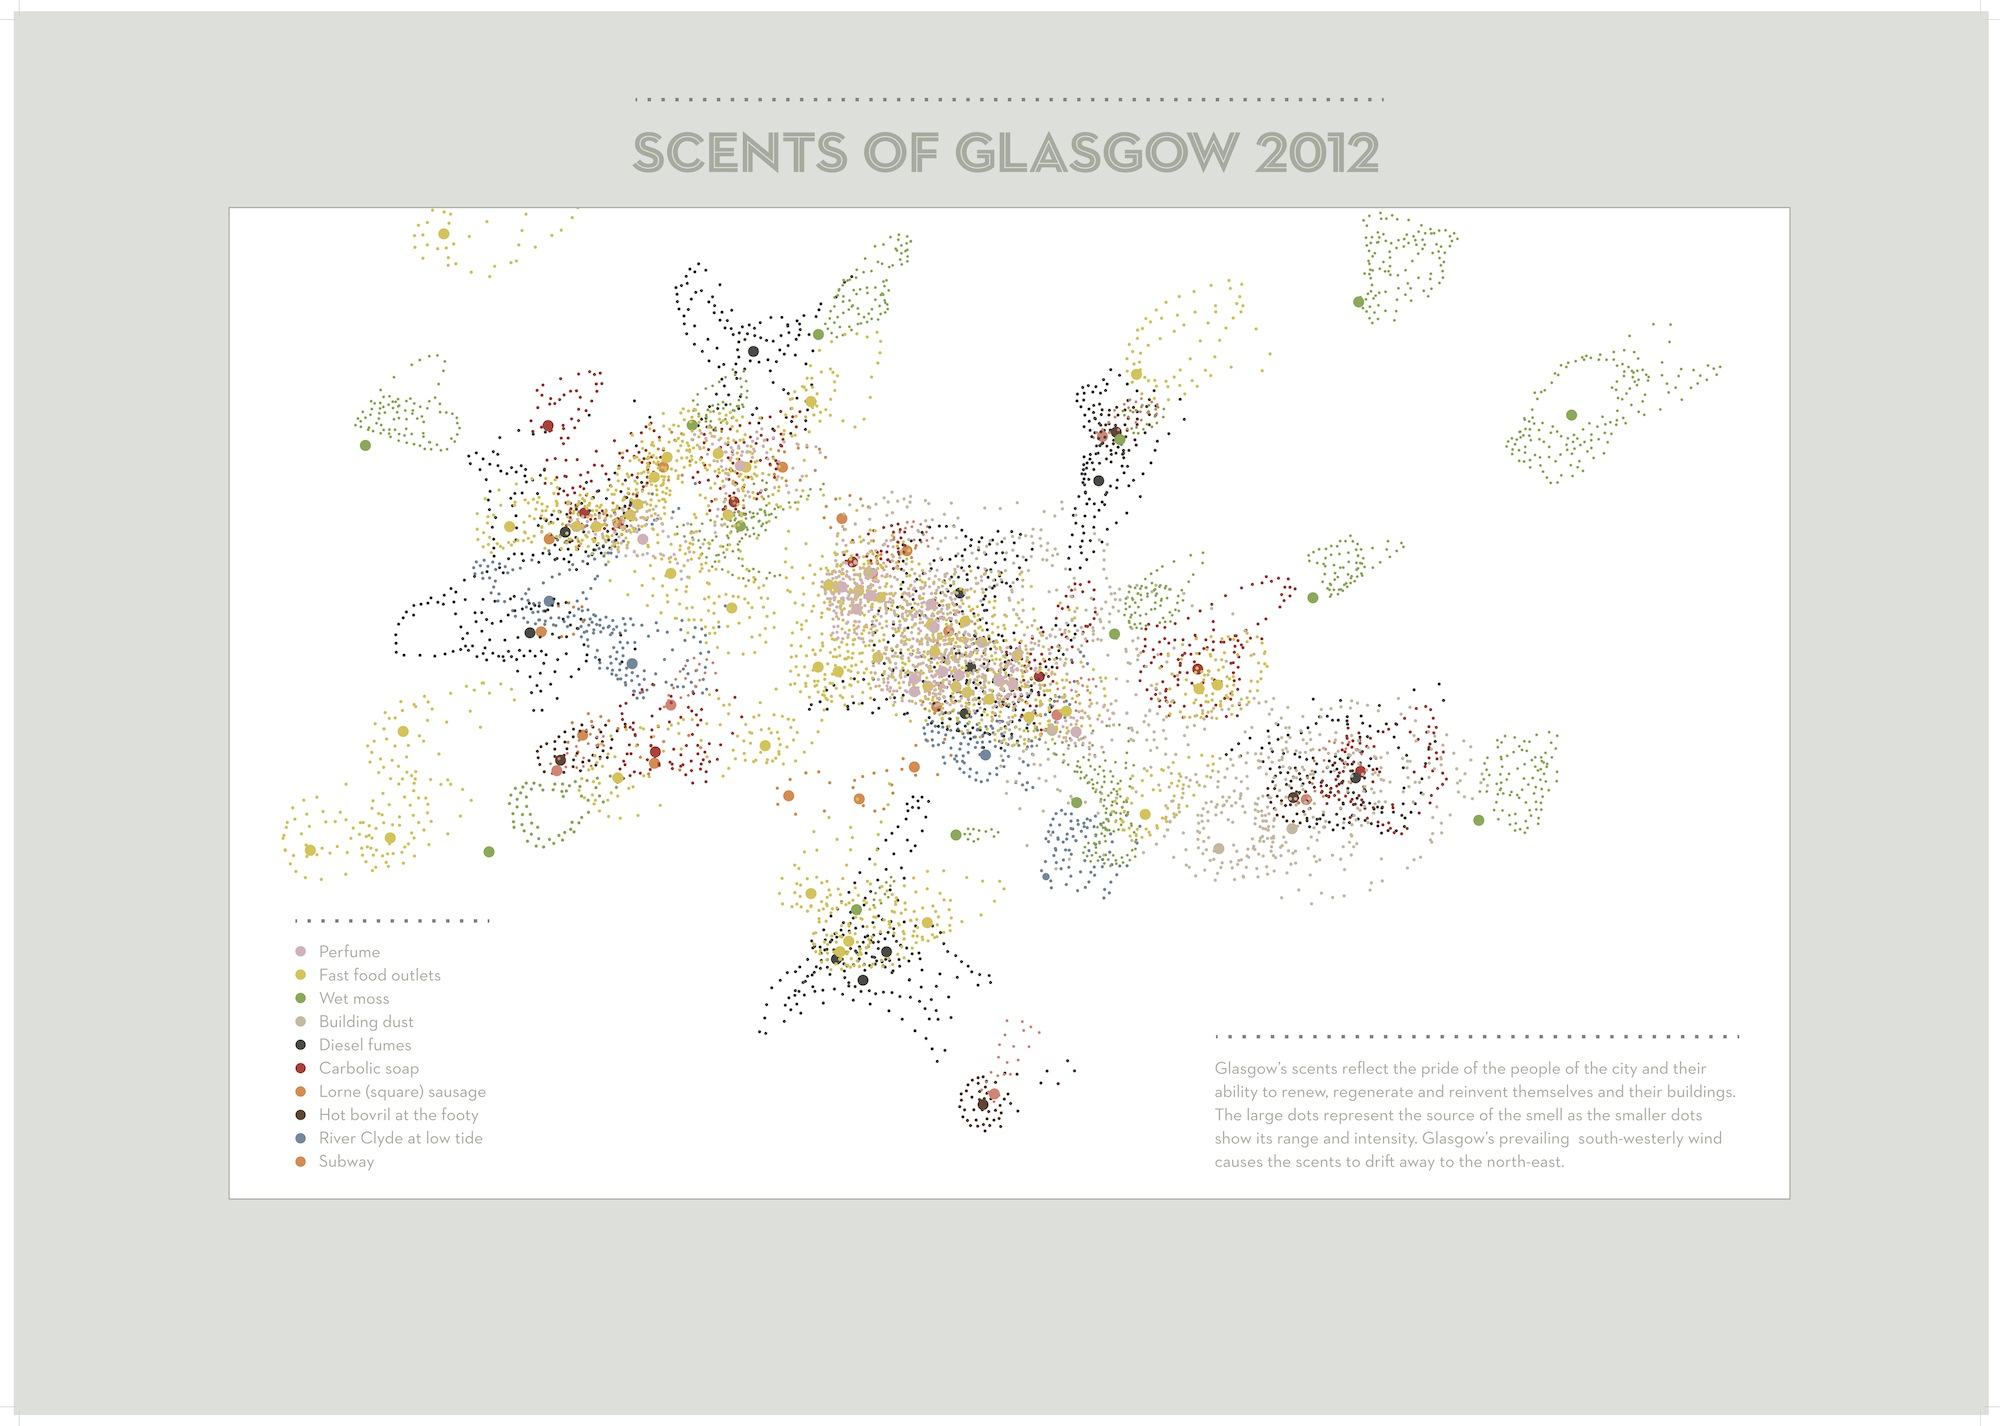 Source: Mapping How Cities Smell, Block by Block, http://www.fastcoexist.com/1682021/mapping-how-cities-smell-block-by-block